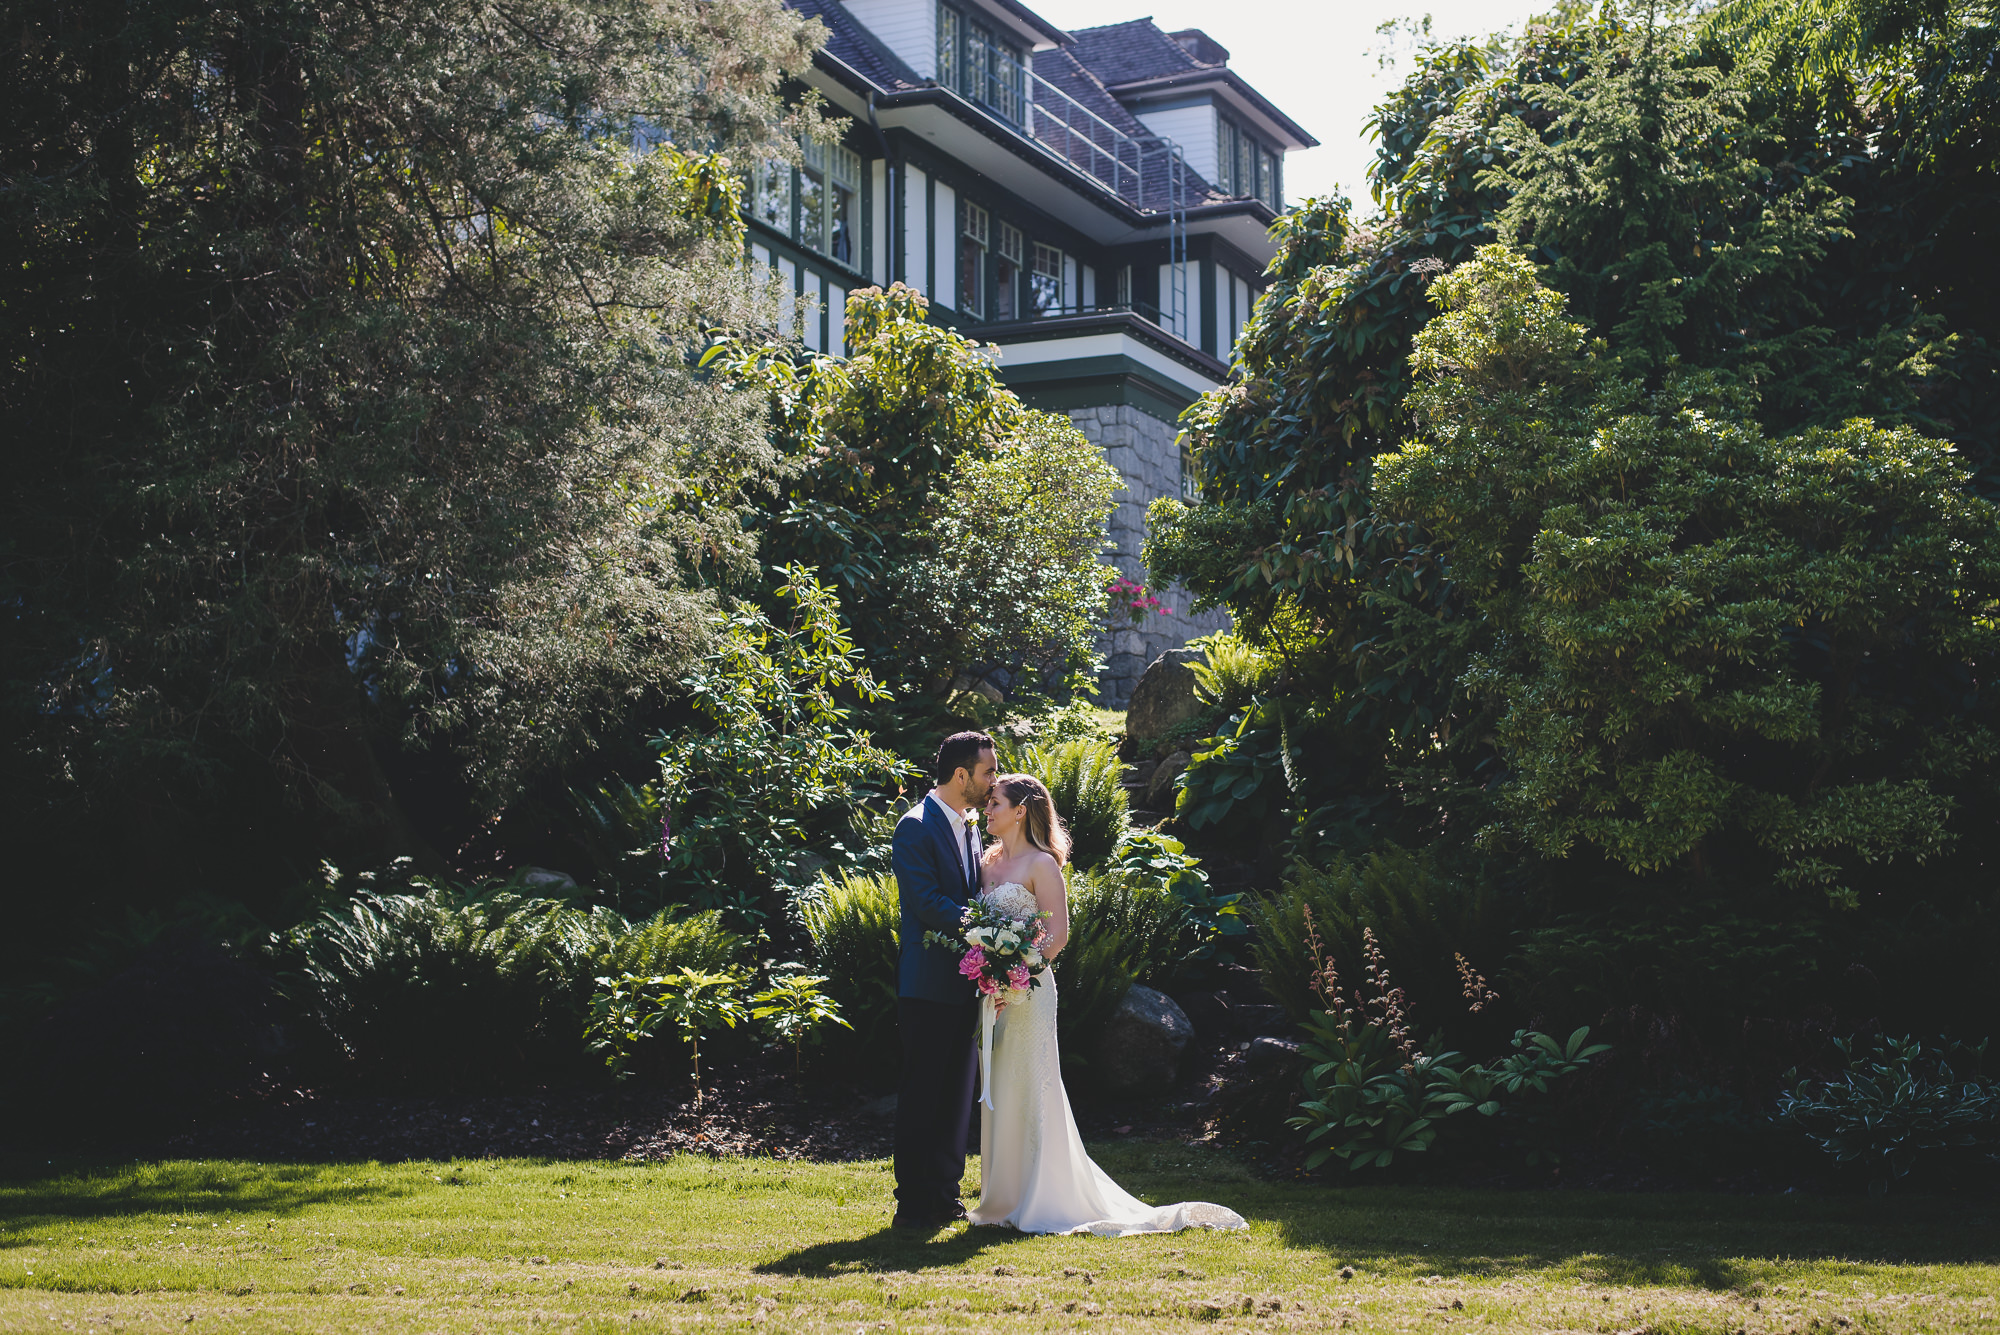 West Point Grey Community Centre Wedding | Vancouver Wedding Photographer